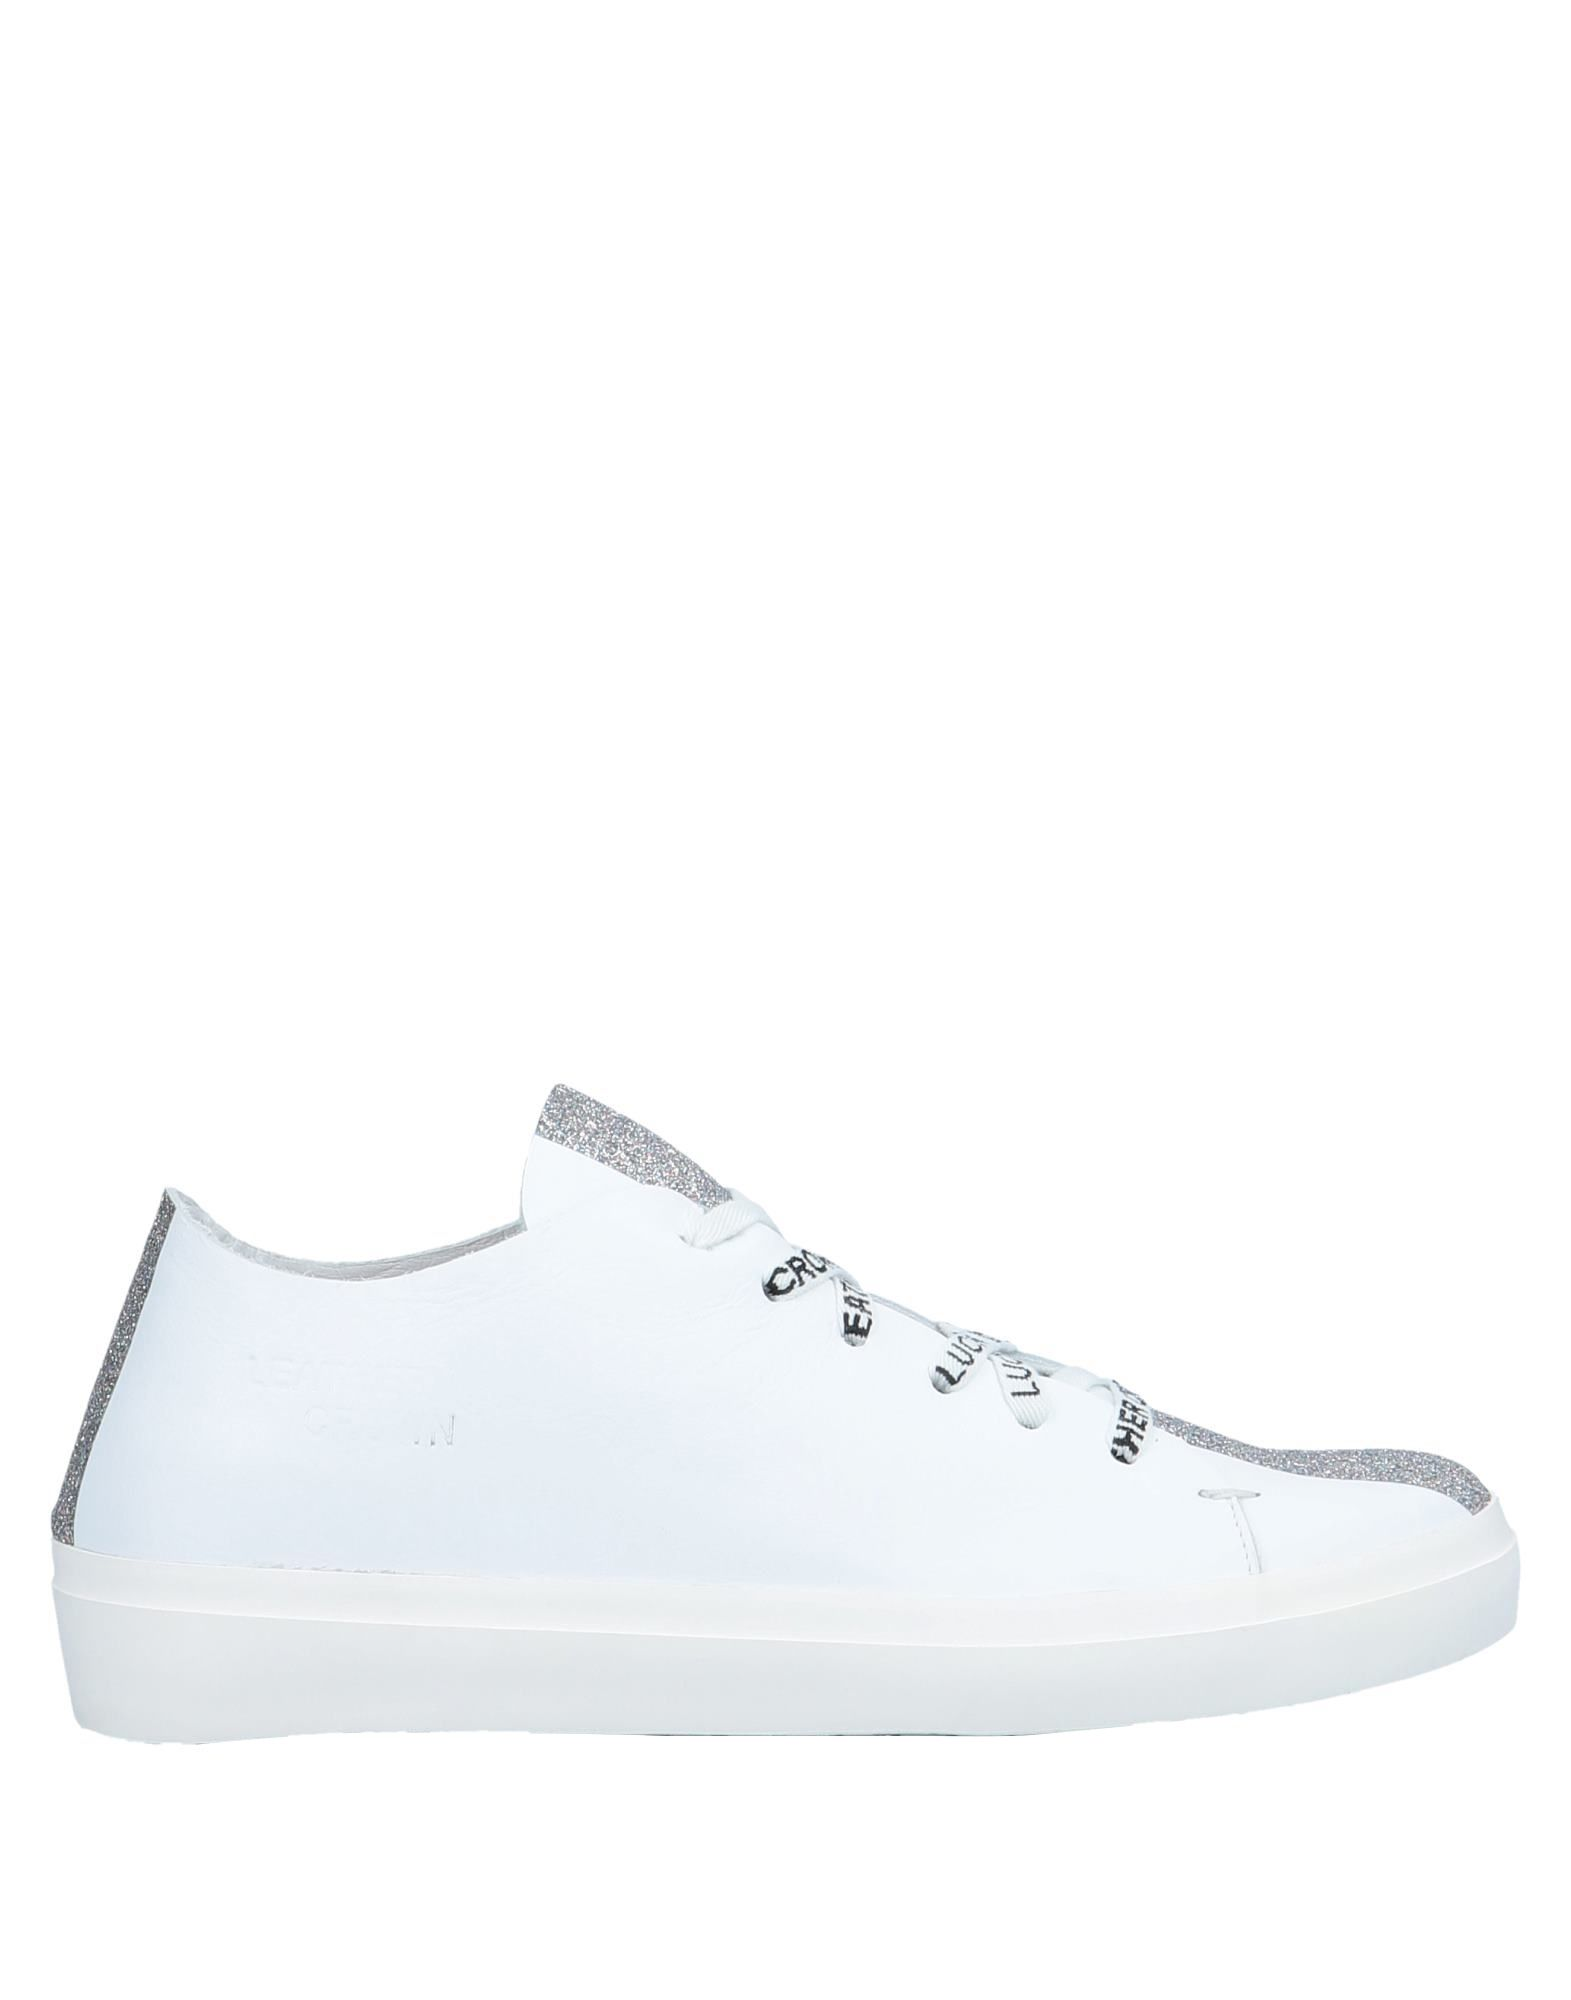 Leather on Crown Sneakers - Women Leather Crown Sneakers online on Leather  Canada - 11565053VD 653bcb